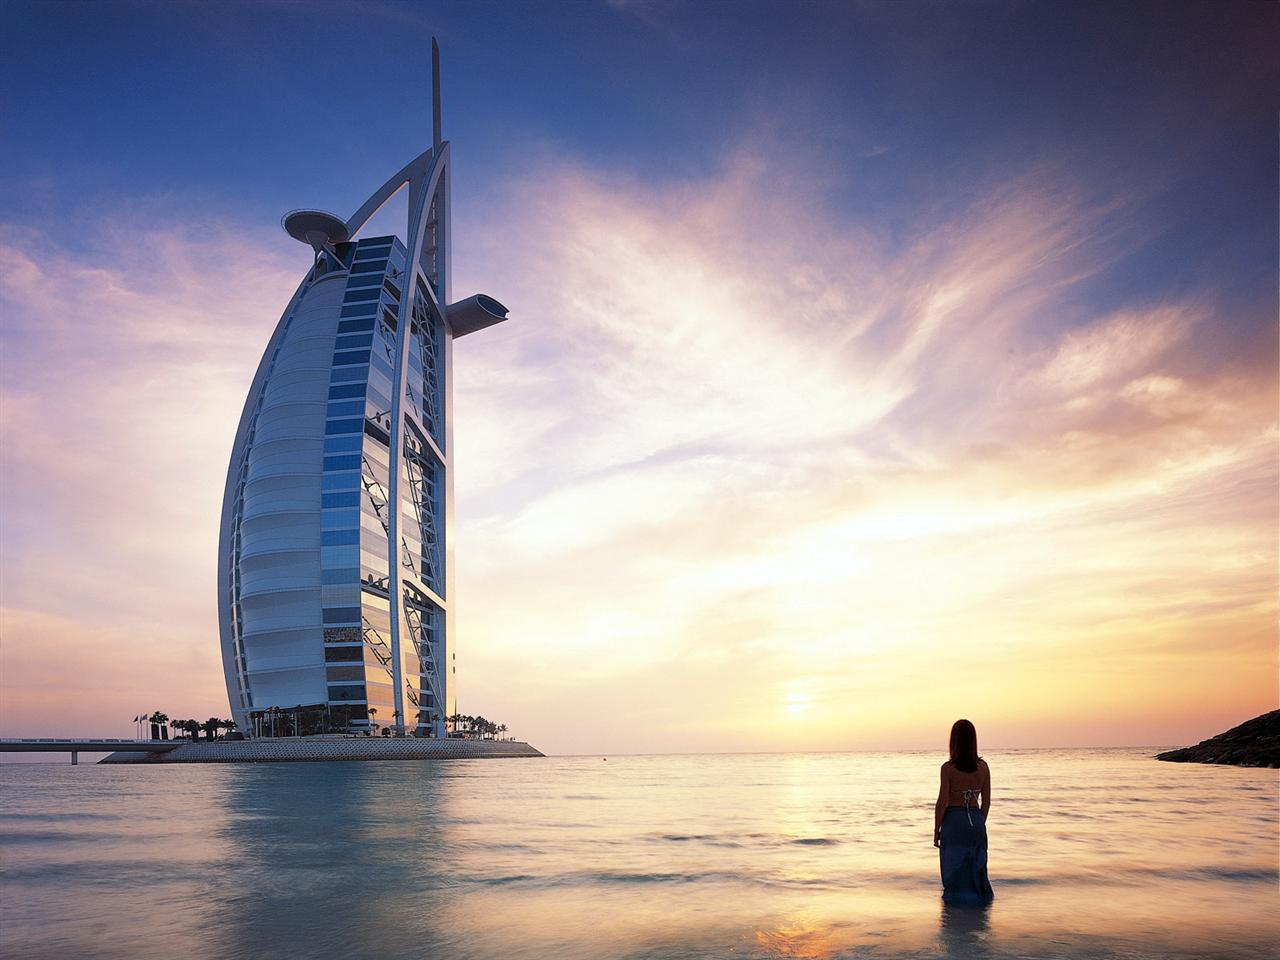 Burj Al-Arab luxury hotel